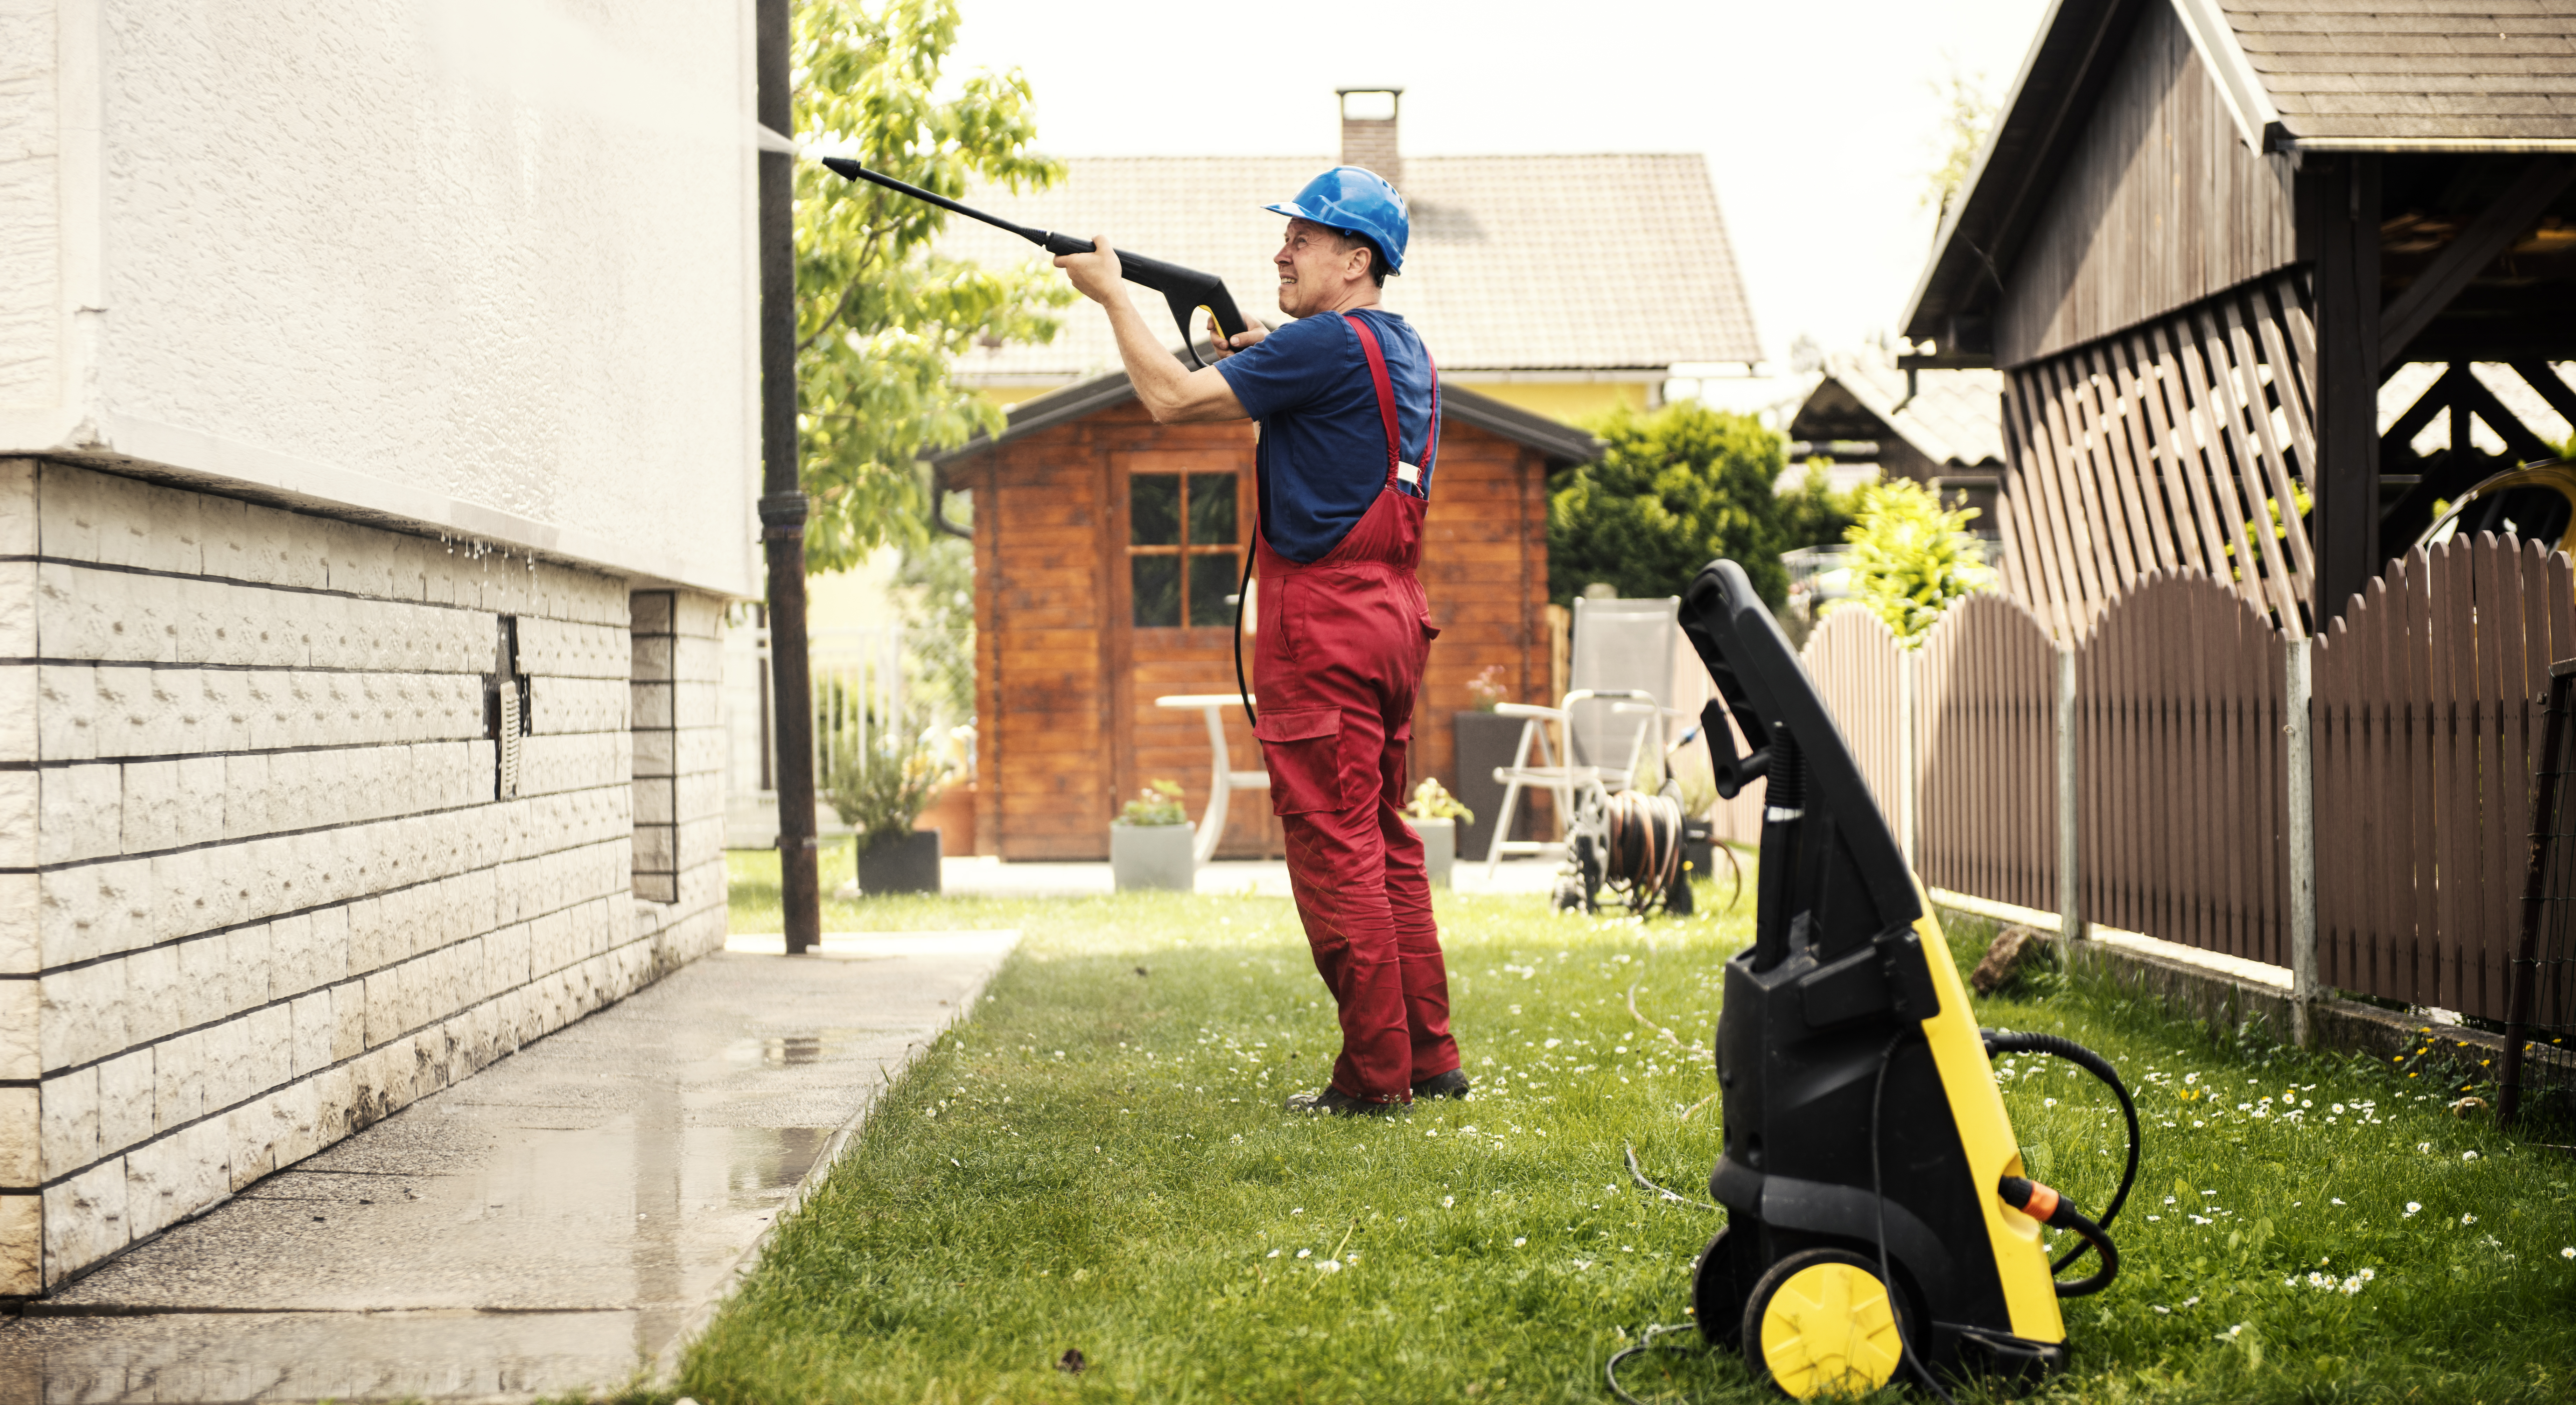 When Should I Change the Oil in My Pressure Washer Pump? | Hunker